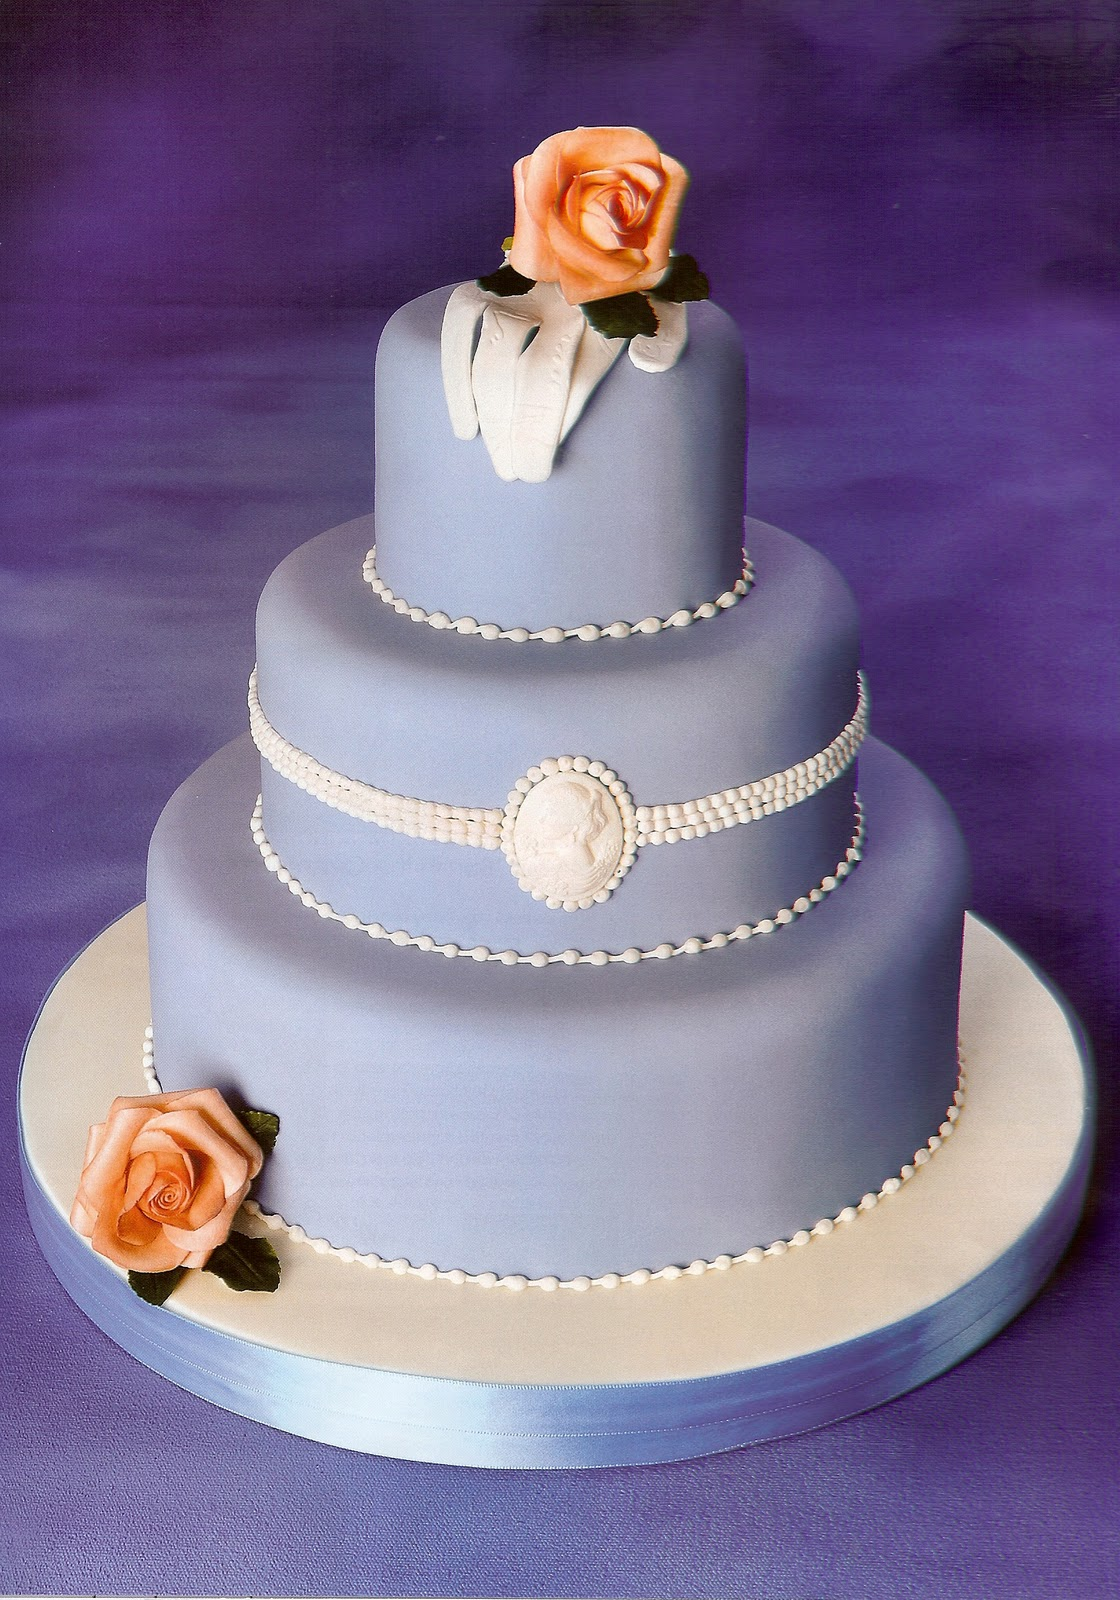 Kathryn @ Kathryn's Cakes: Cake Craft and Decoration